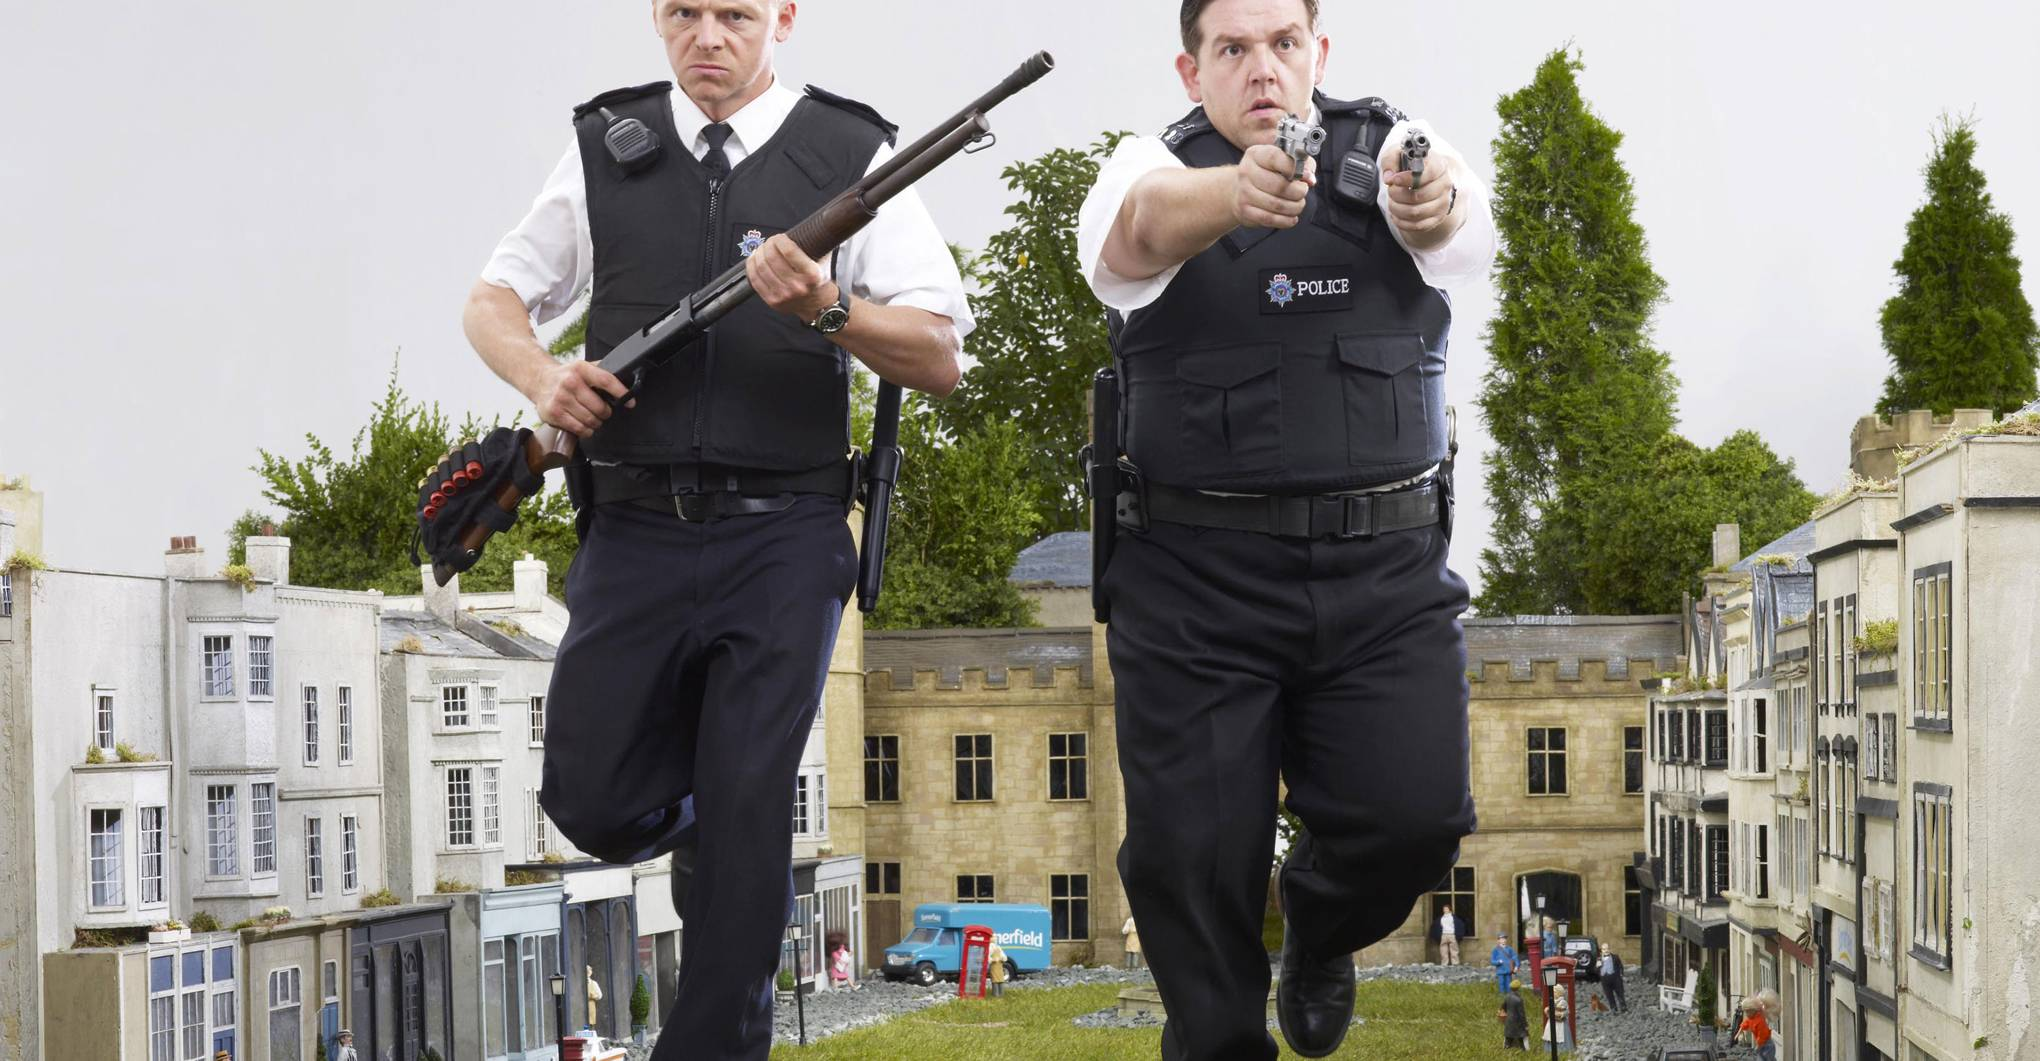 Where was 'Hot Fuzz' filmed?